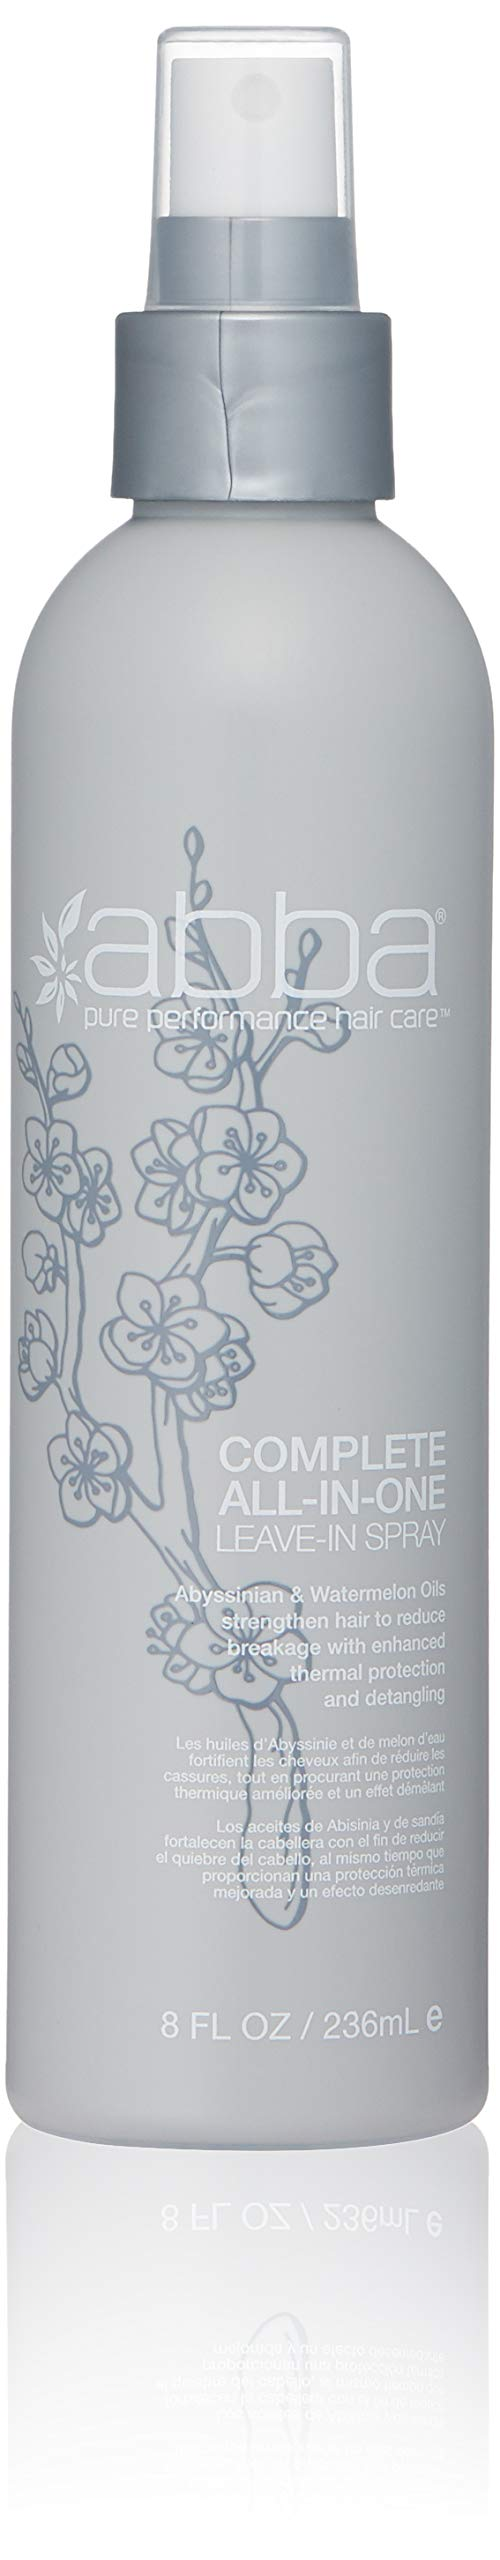 ABBA Complete All-in-One Leave-in Spray Conditioner by ABBA